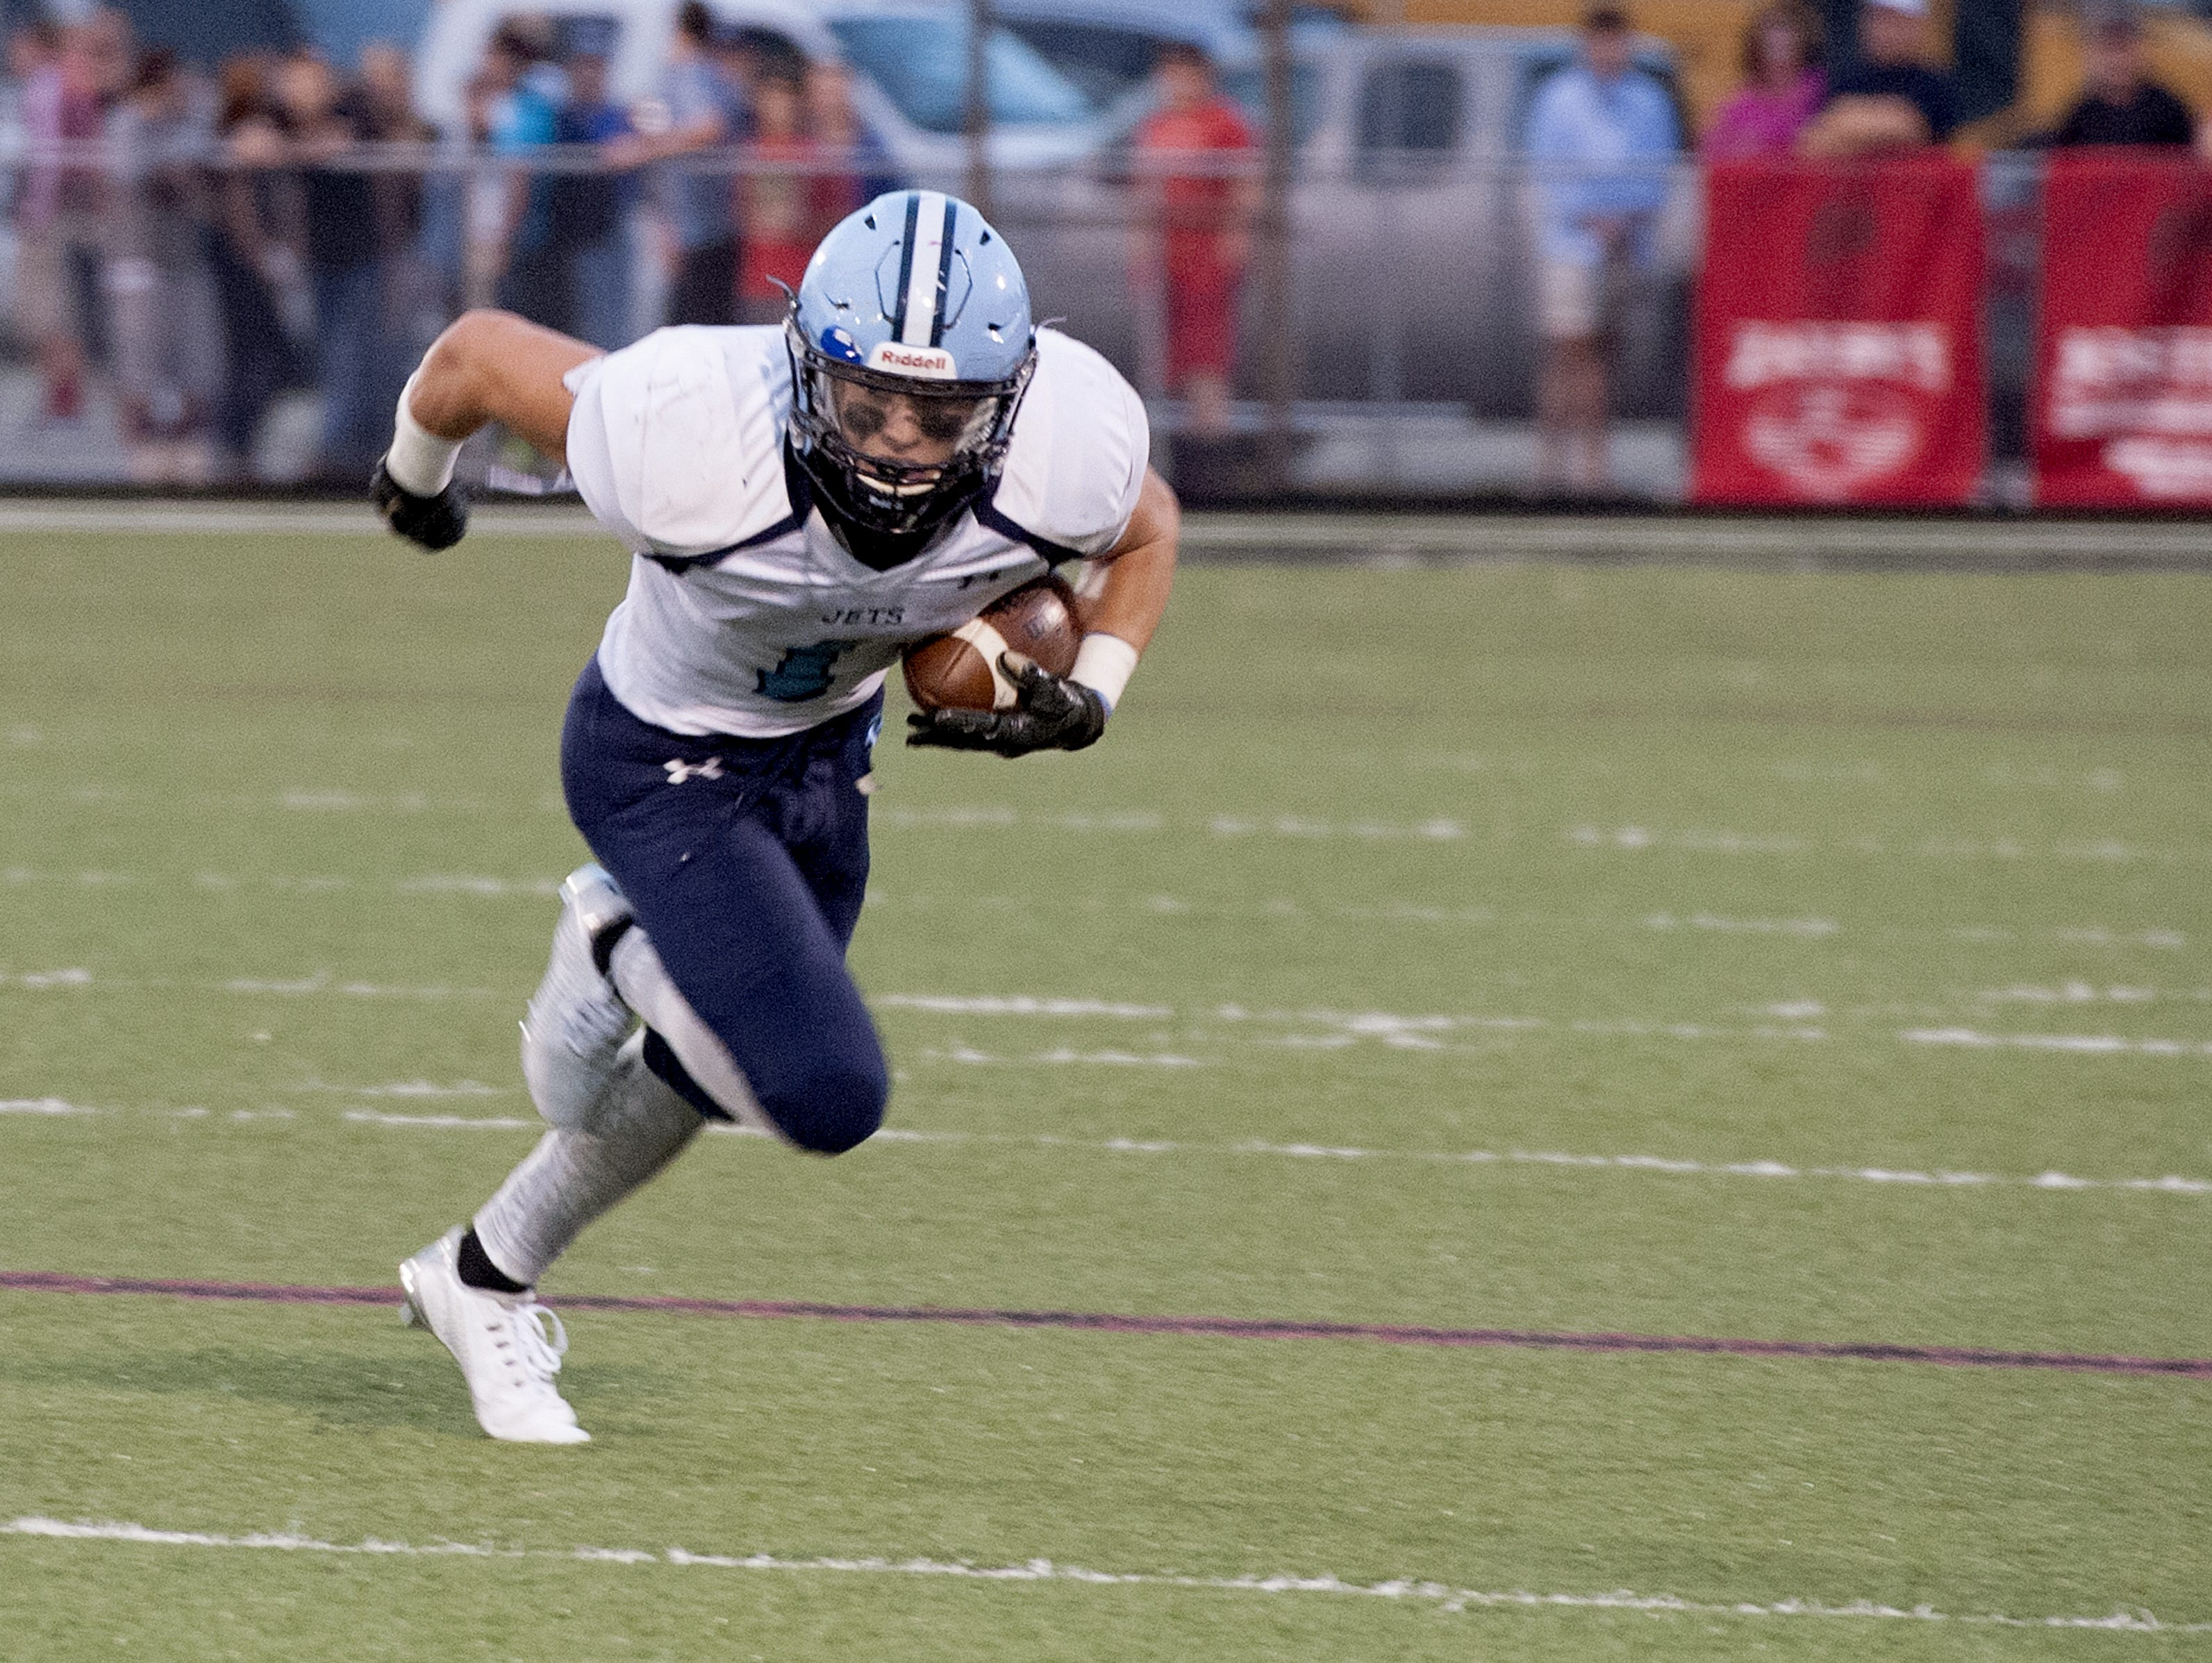 Enka senior Michael Cantrell has committed to play college football for Mars Hill.